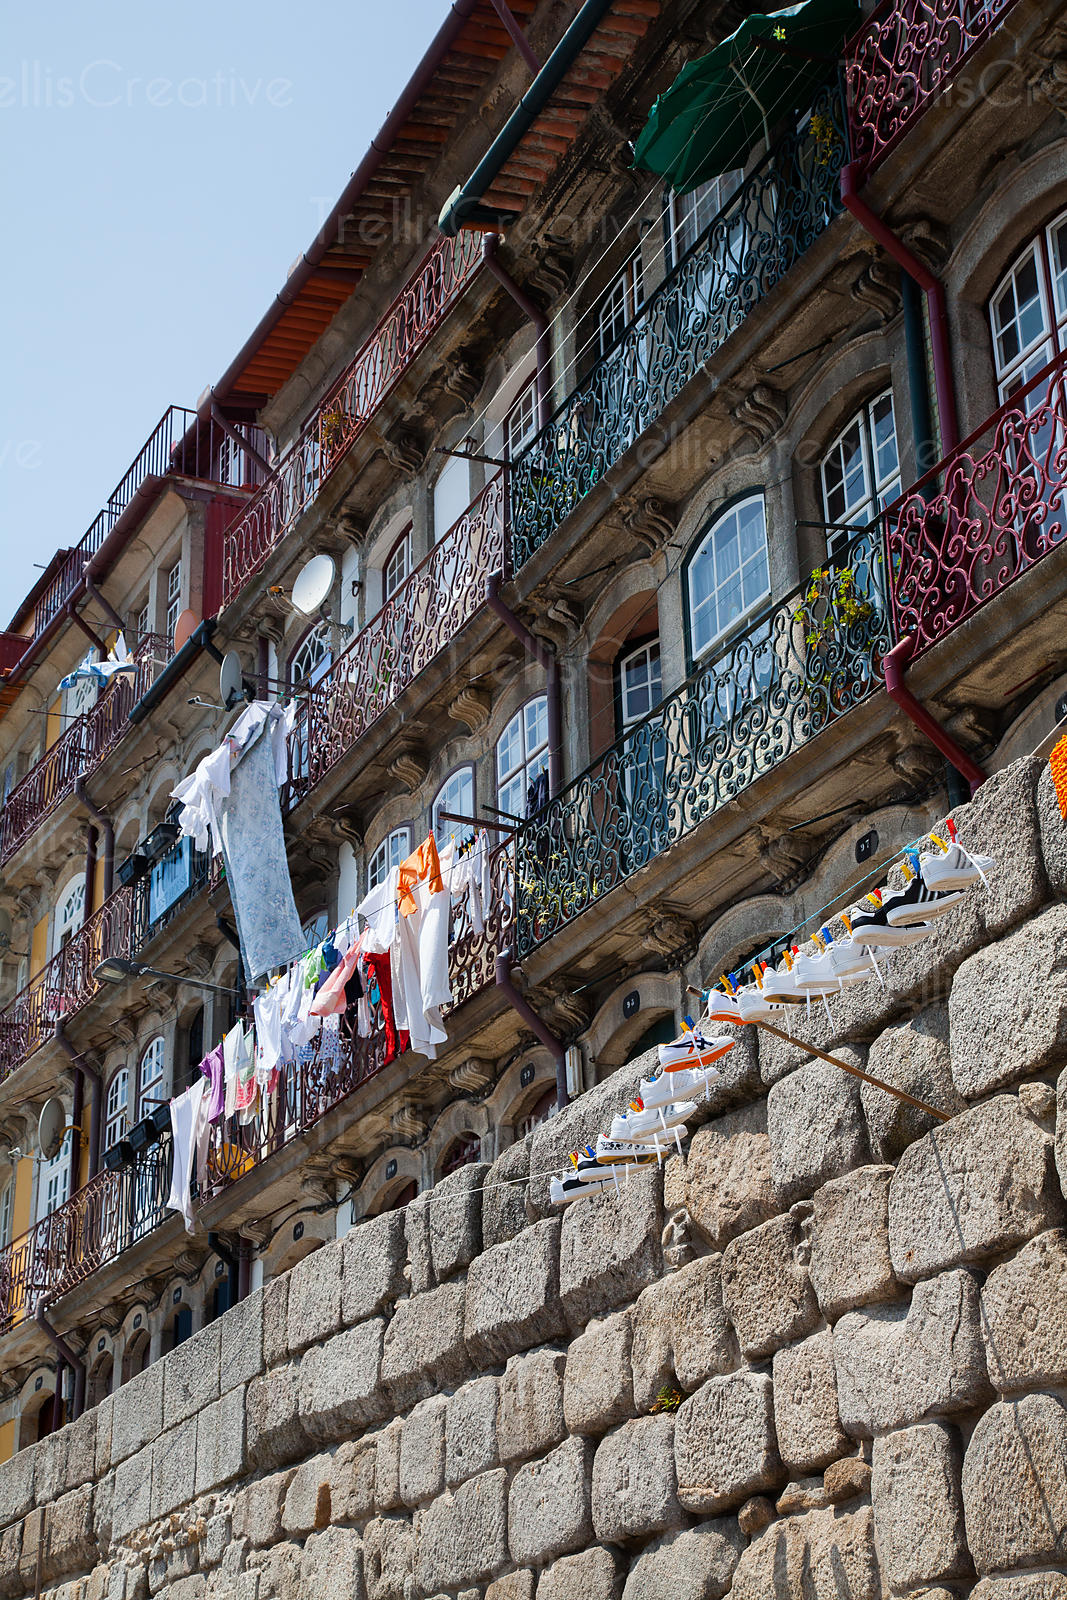 Crisp laundry and clean white sneakers dry outside on drying lines in Riberia district of Porto